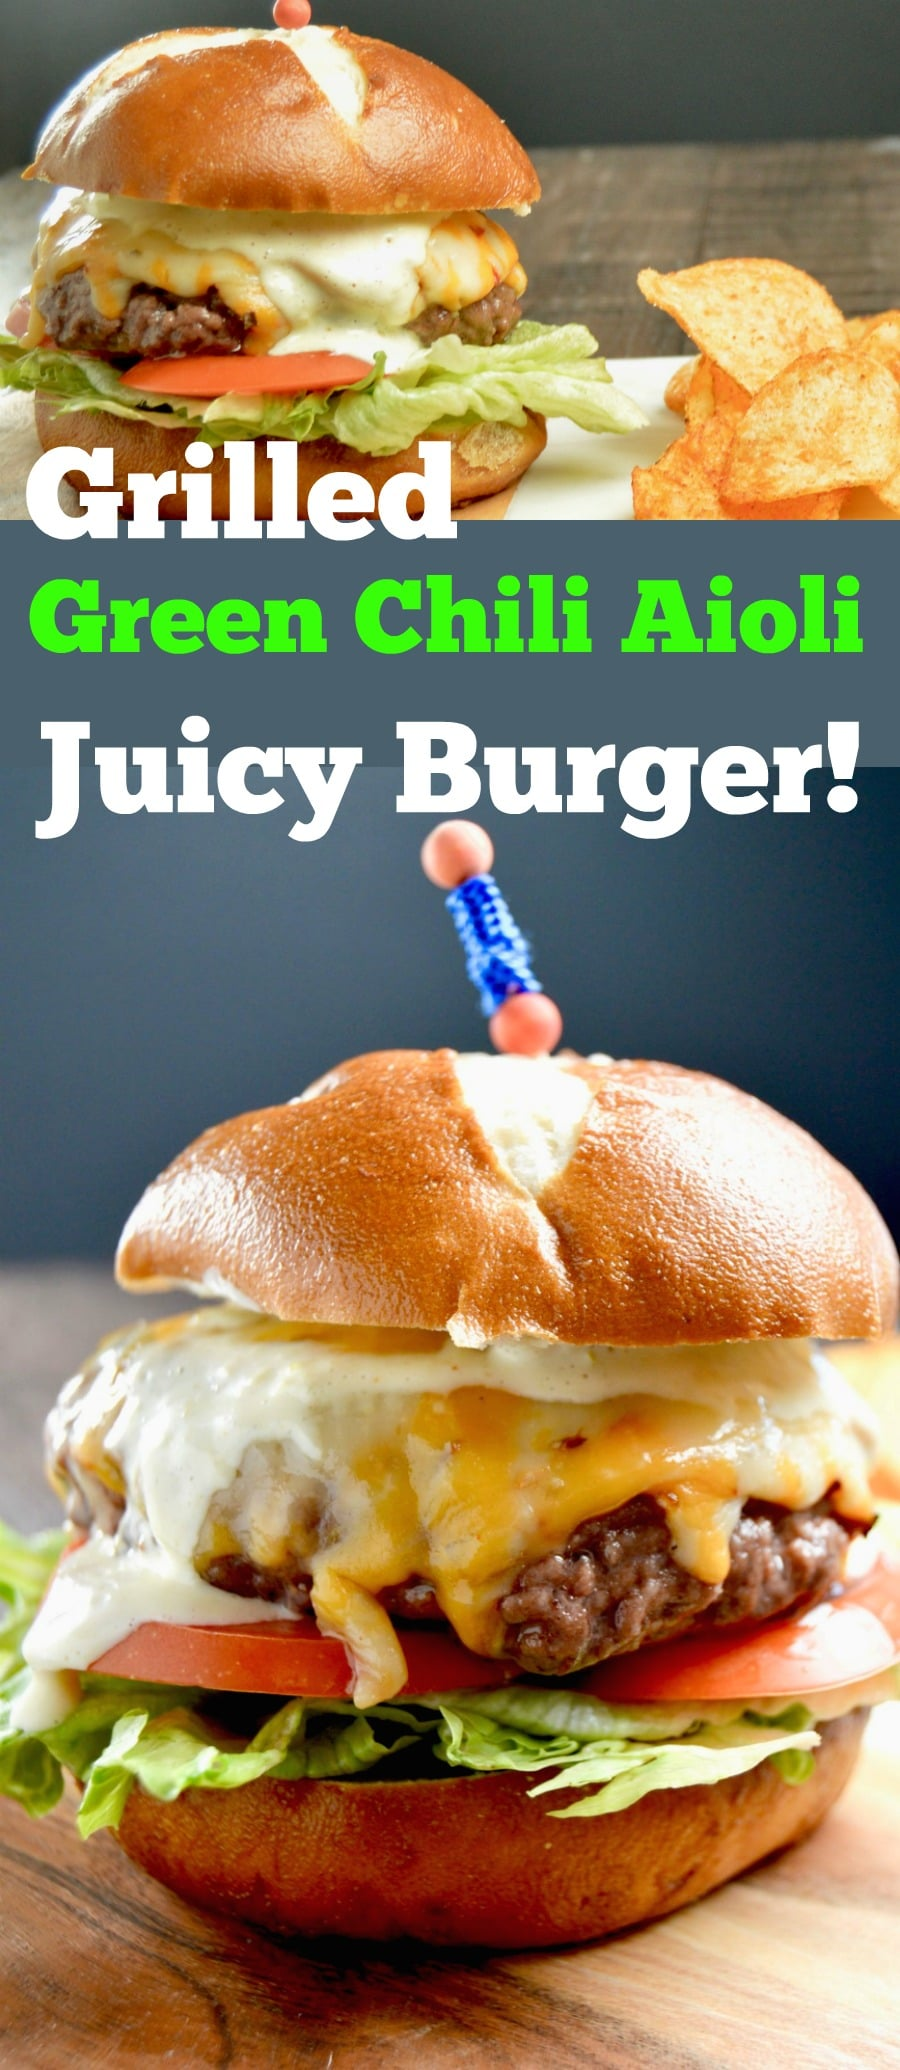 Topped with 3 pepper cheese and a slow heat, tangy green chili aoili give this Juicy Grilled Green Chili Aoili Cheeseburger something out of the ordinary for your next BBQ!